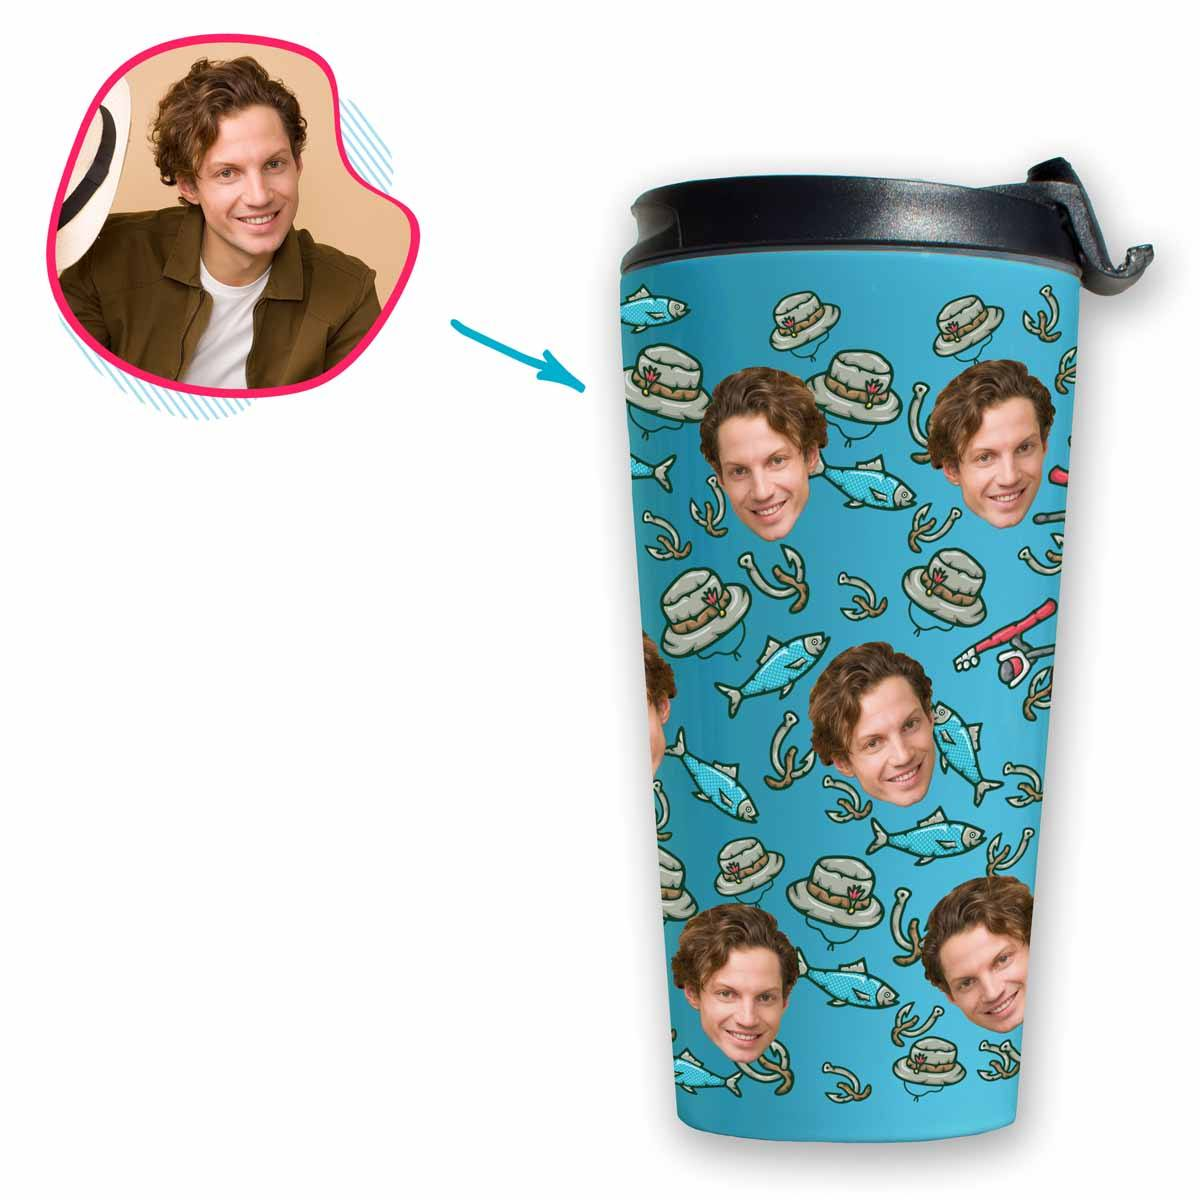 Blue Fishing personalized travel mug with photo of face printed on it